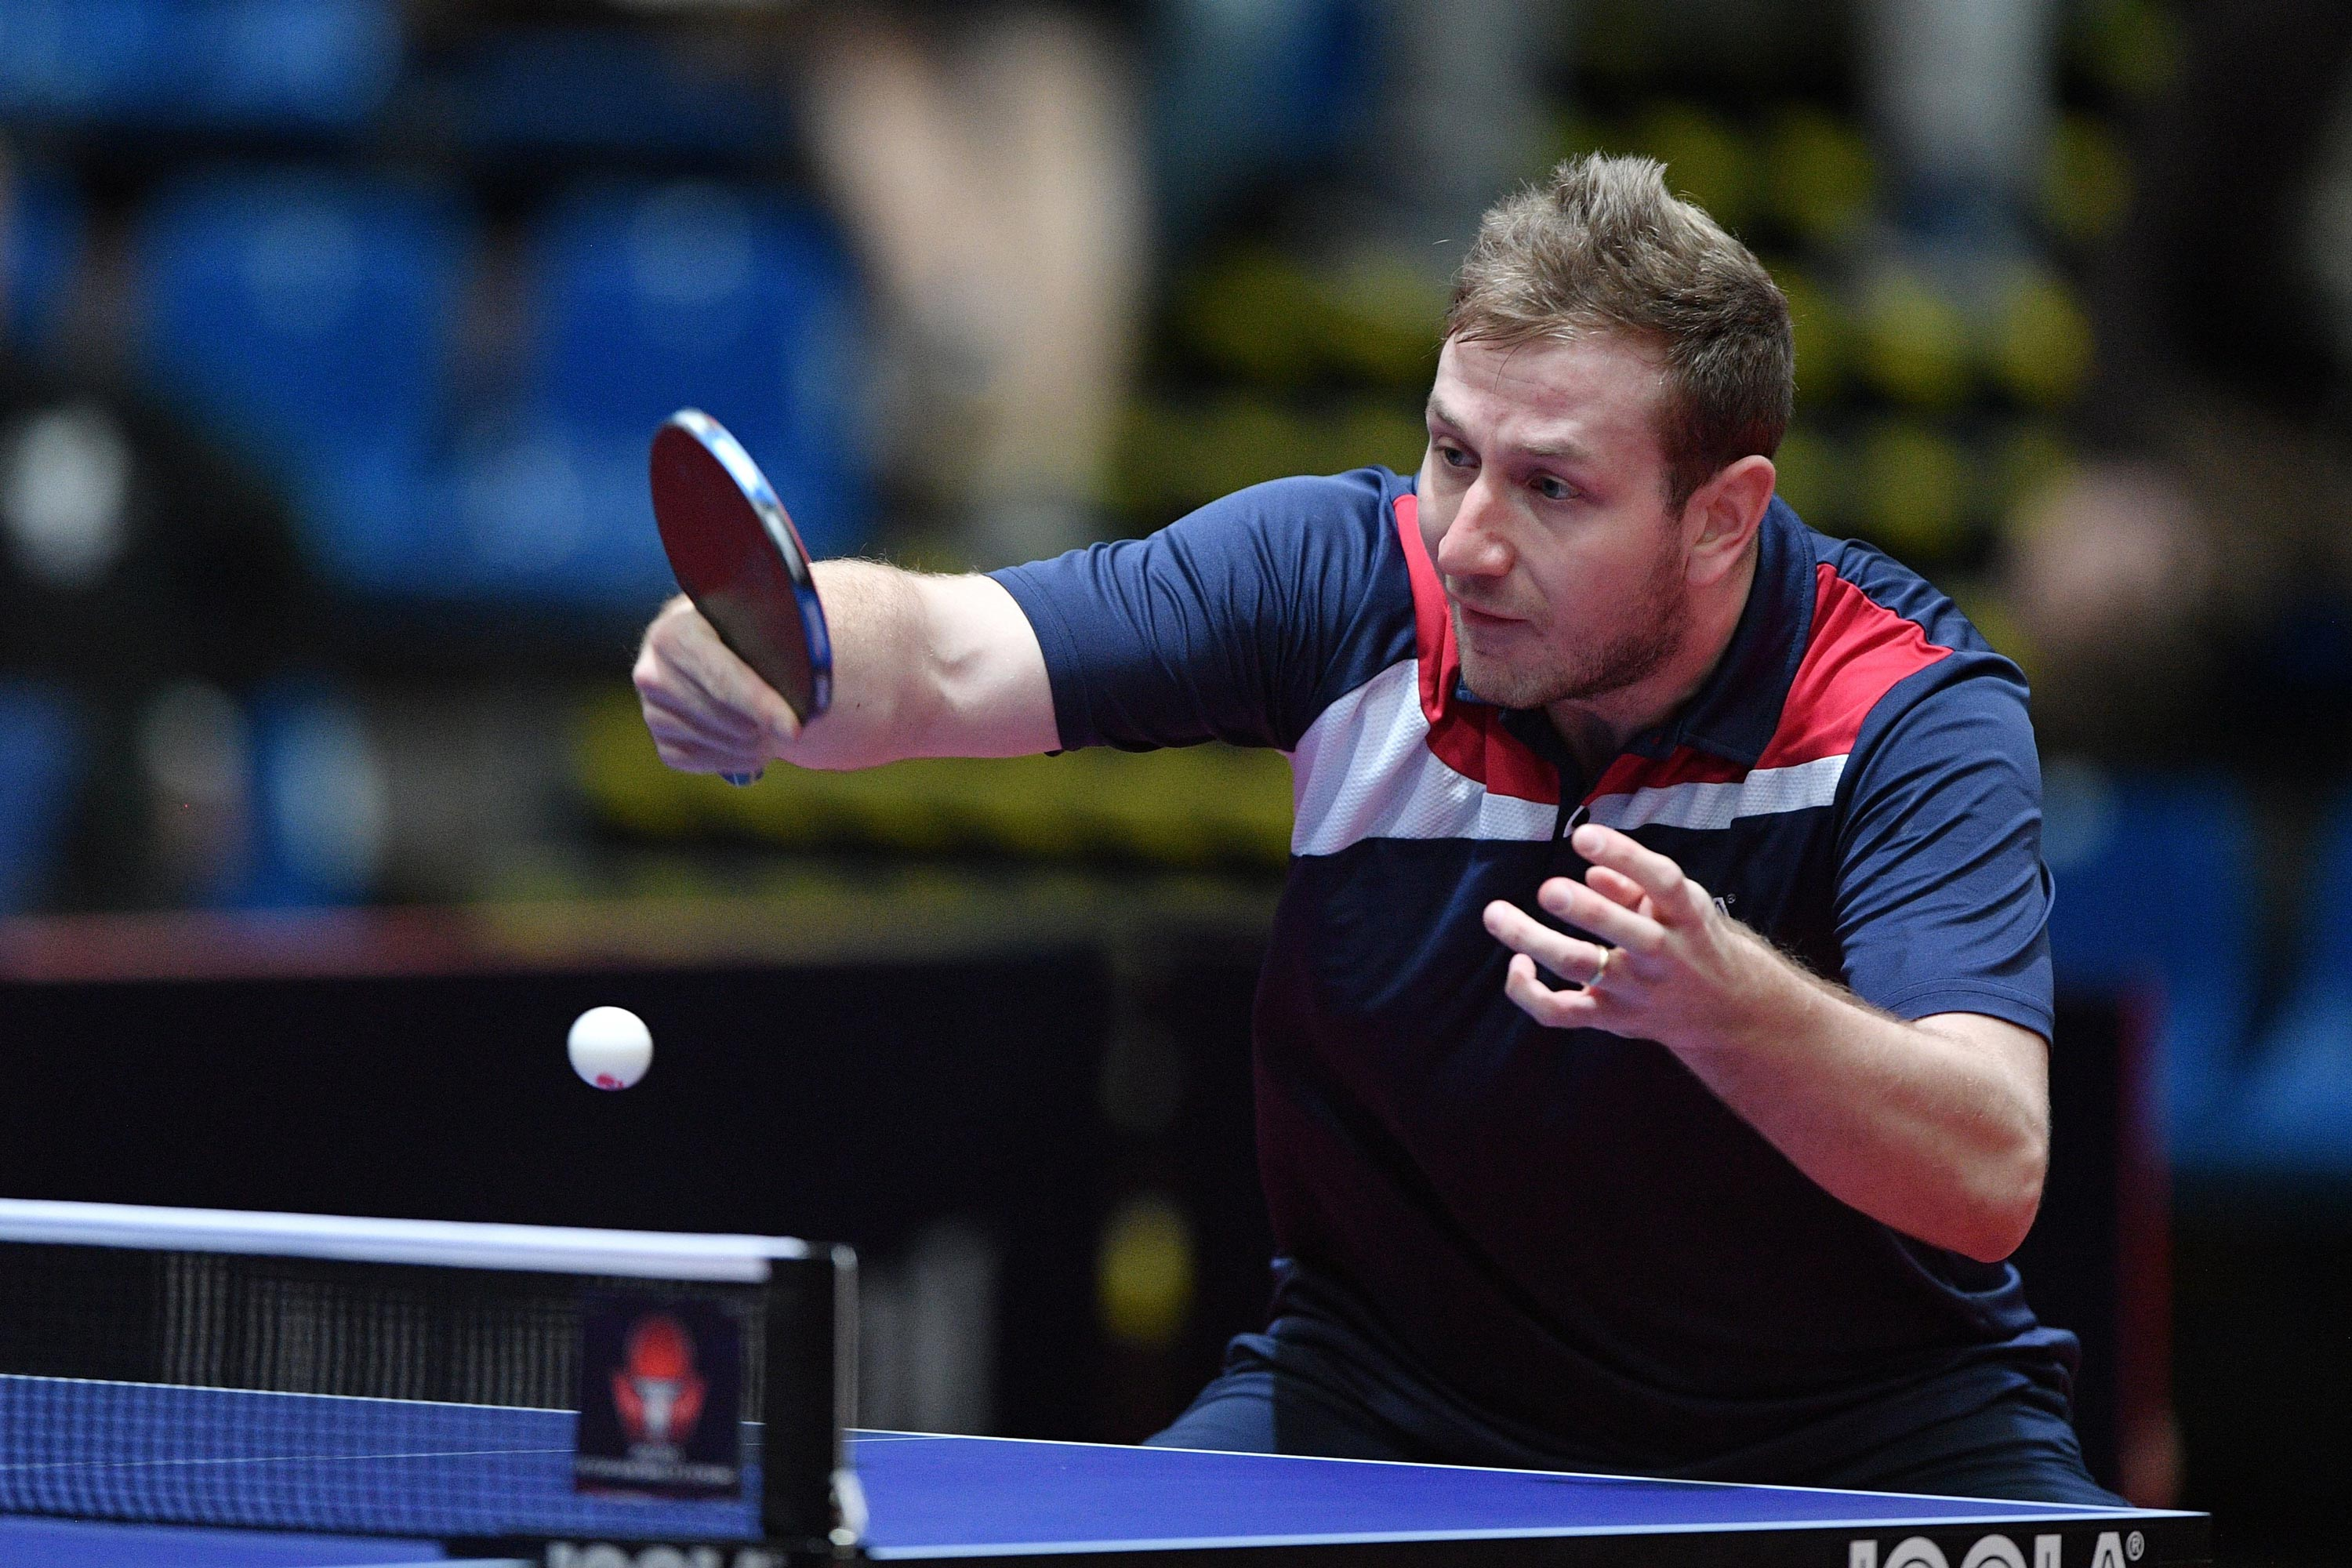 Czech Republic's Pavel Širuček competes in the ITTF World Tour in Budapest, Hungary, on February 21, 2020.